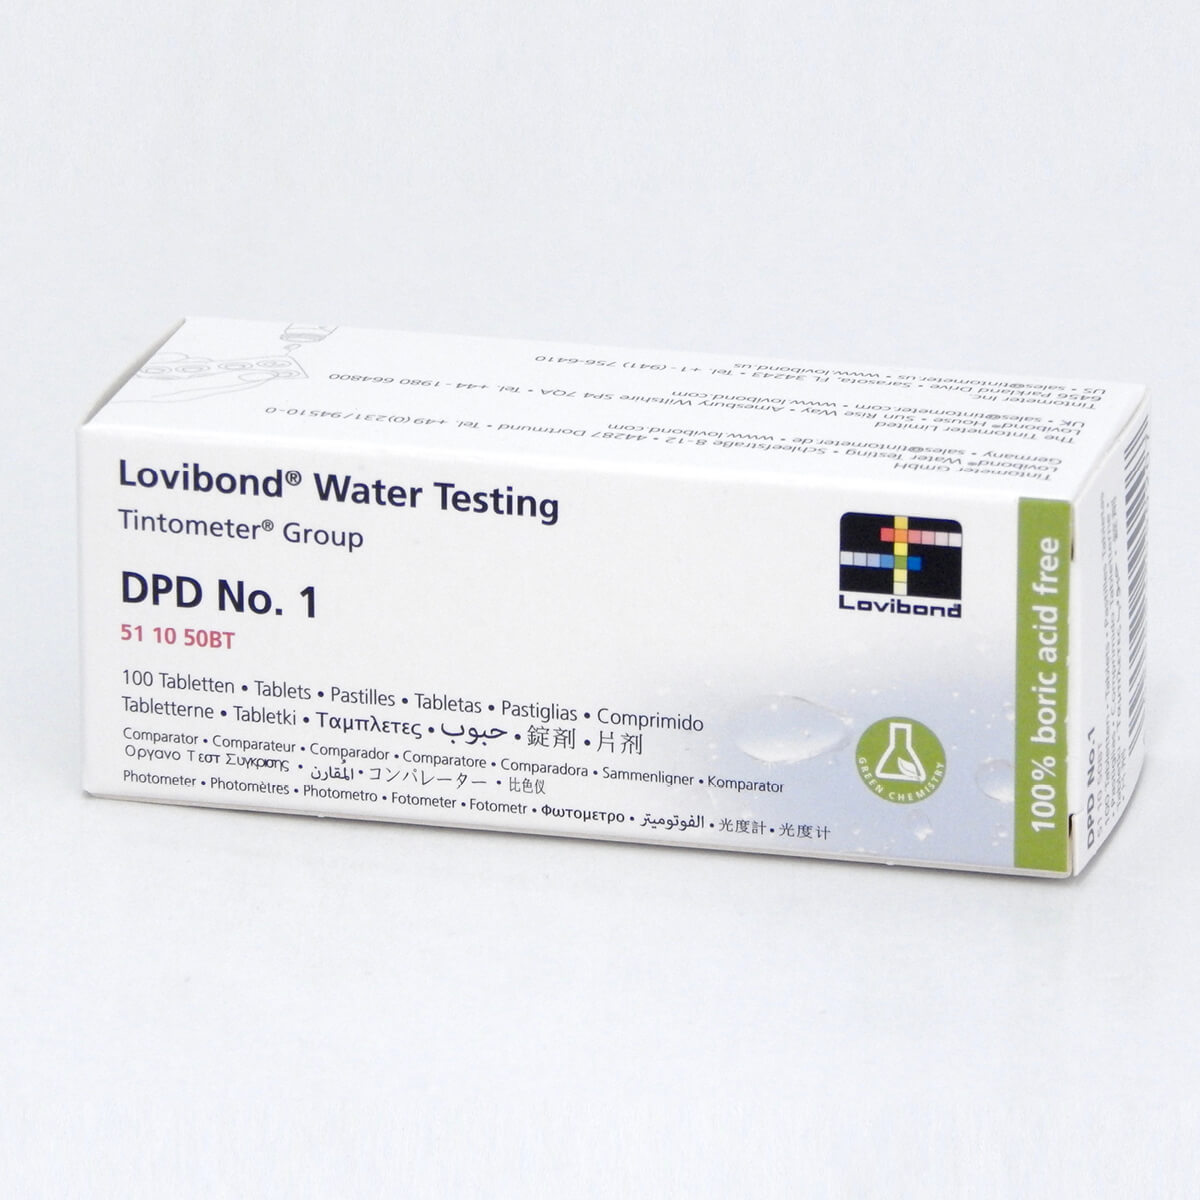 Lovibond DPD No 4 Tablets 100 Box